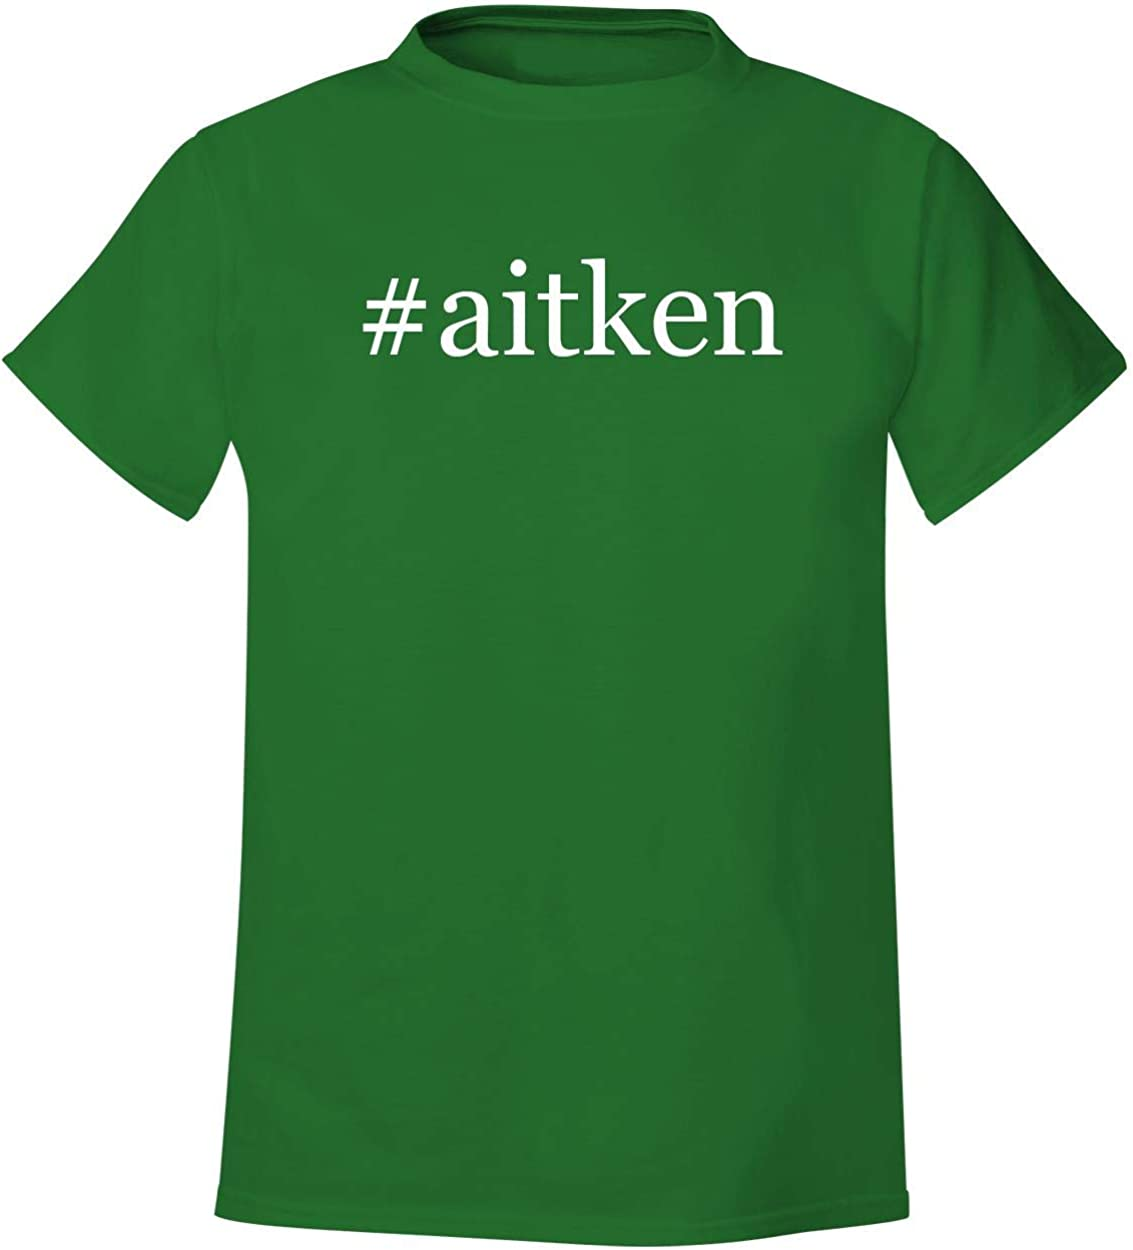 #aitken - Men's Hashtag Soft & Comfortable T-Shirt 51PERTh9SNL